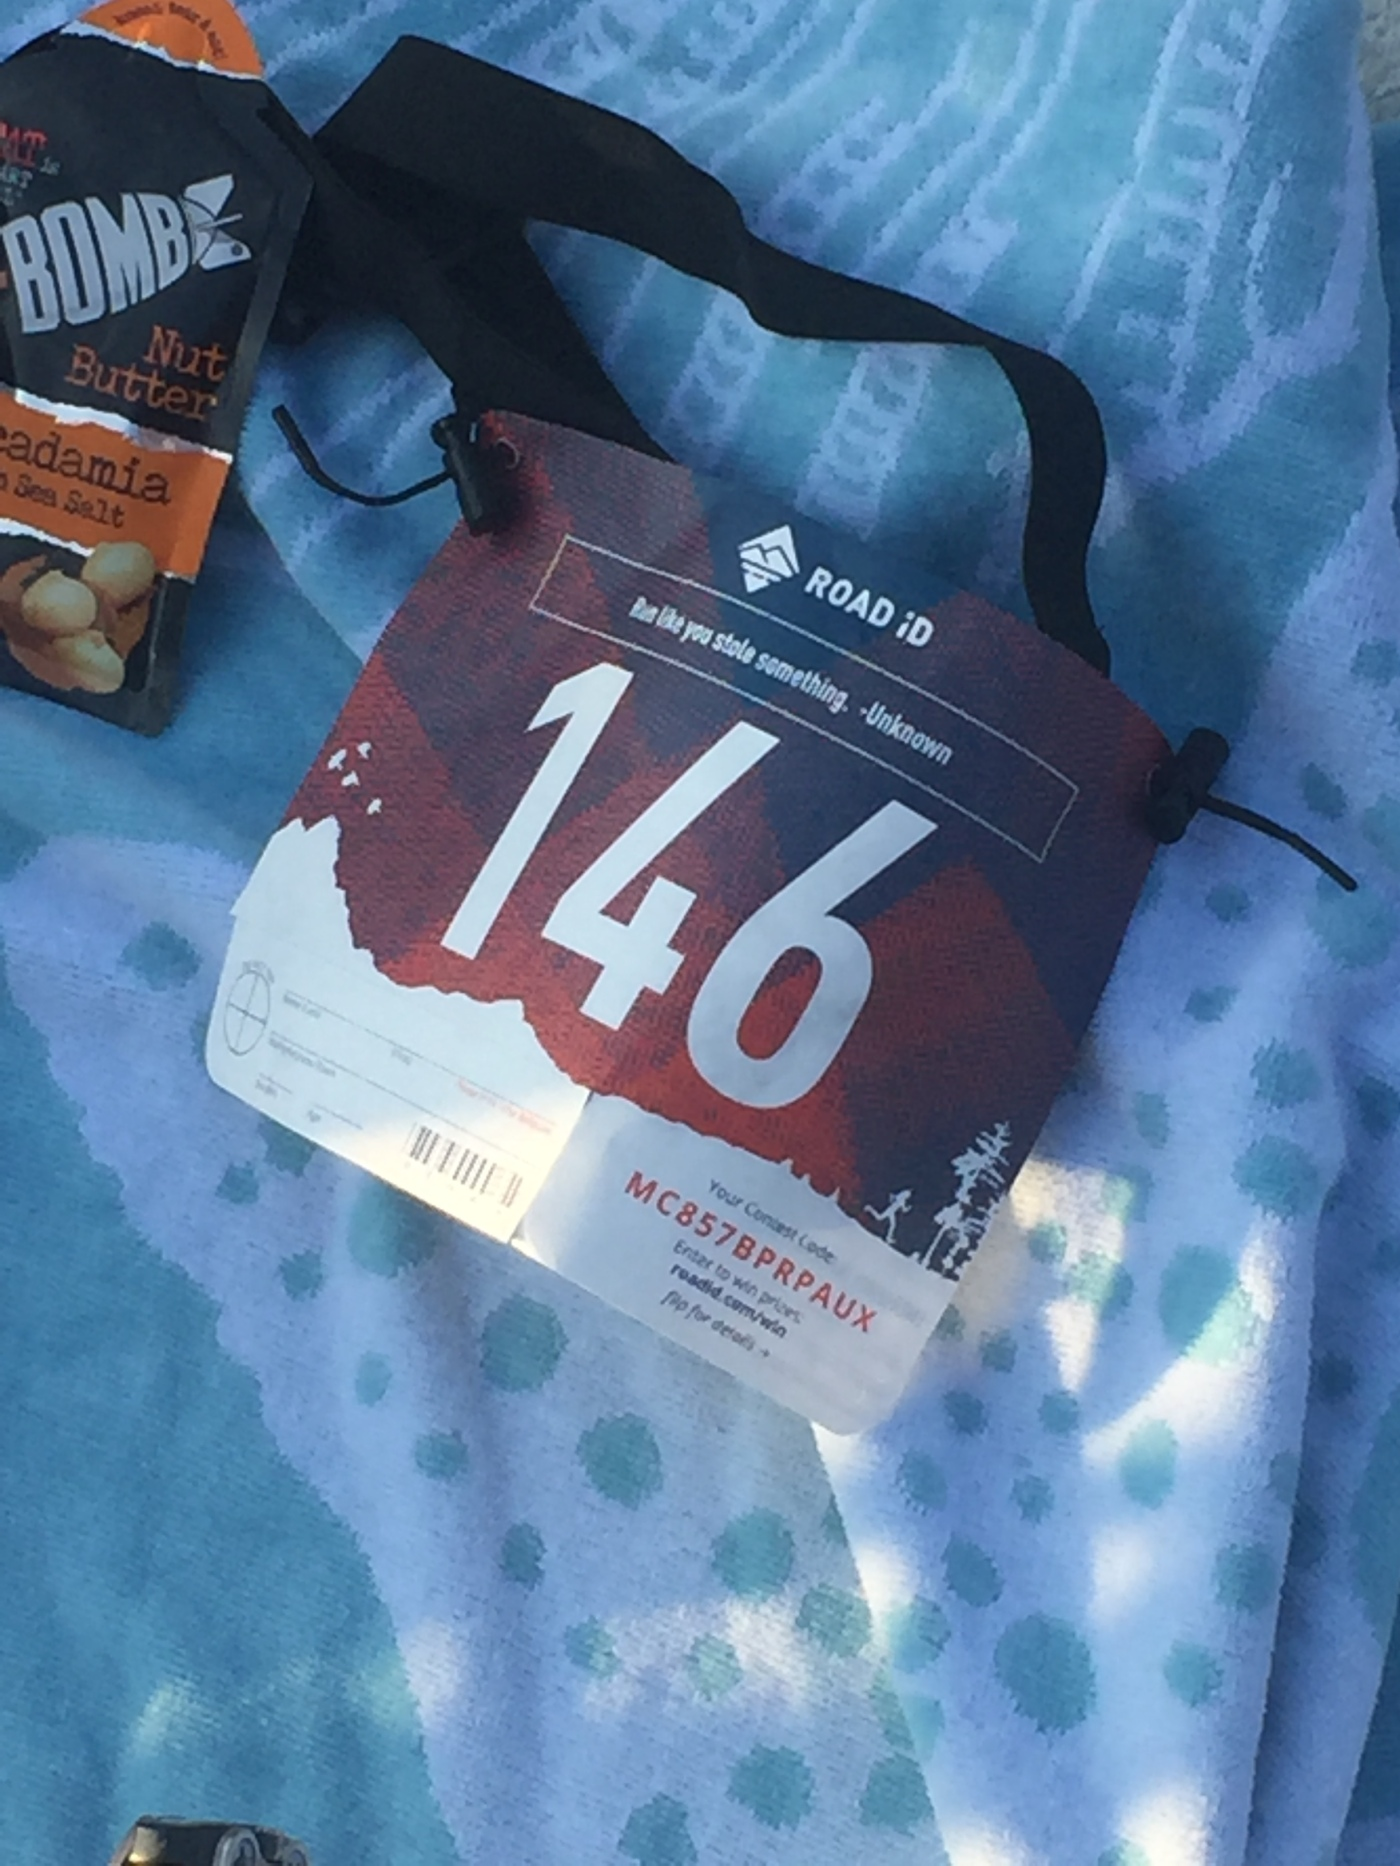 Update to Triathlon Living 004 – Results of my first